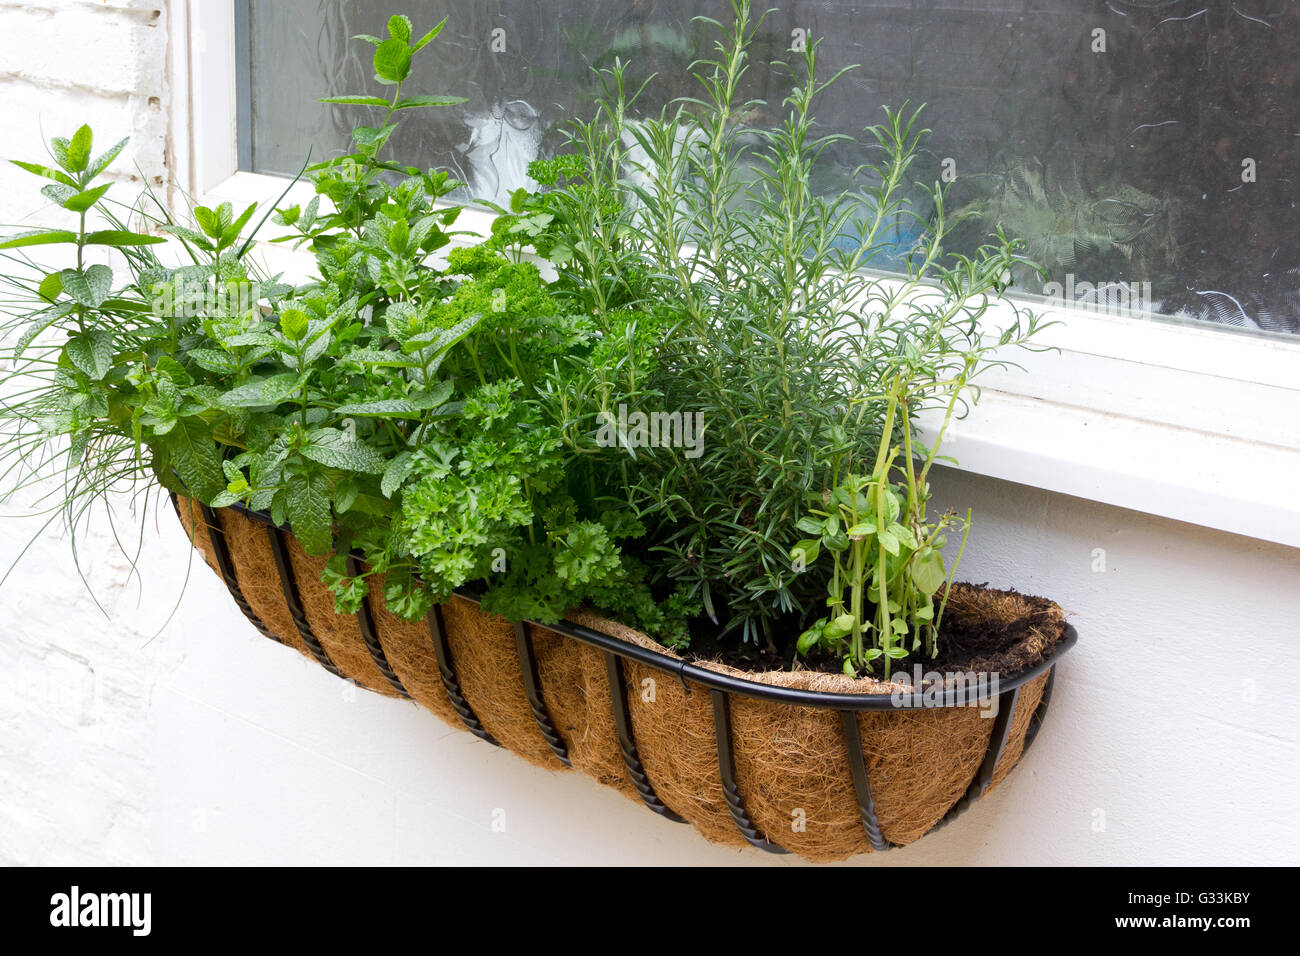 Window herb box - Stock Image